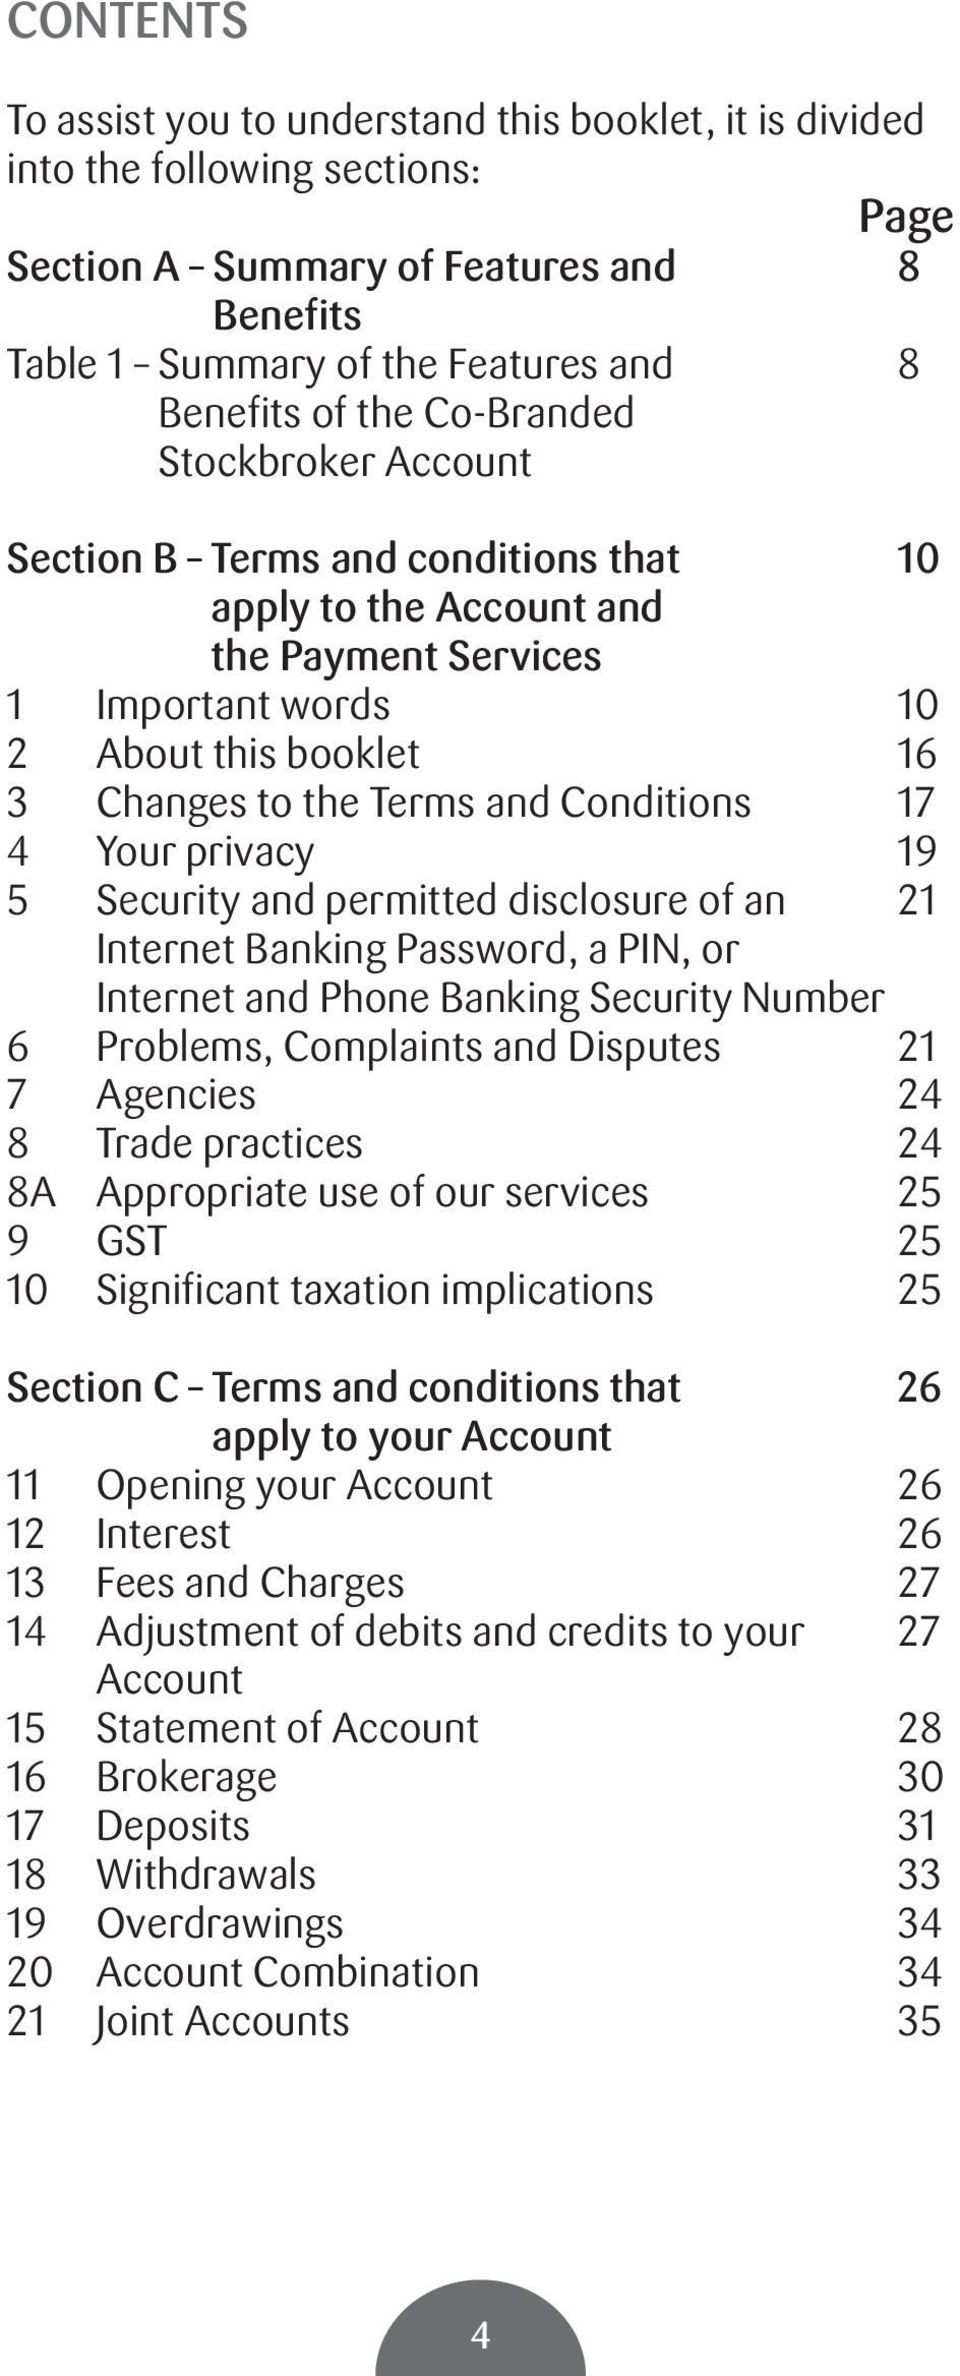 17 4 Your privacy 19 5 Security and permitted disclosure of an 21 Internet Banking Password, a PIN, or Internet and Phone Banking Security Number 6 Problems, Complaints and Disputes 21 7 Agencies 24